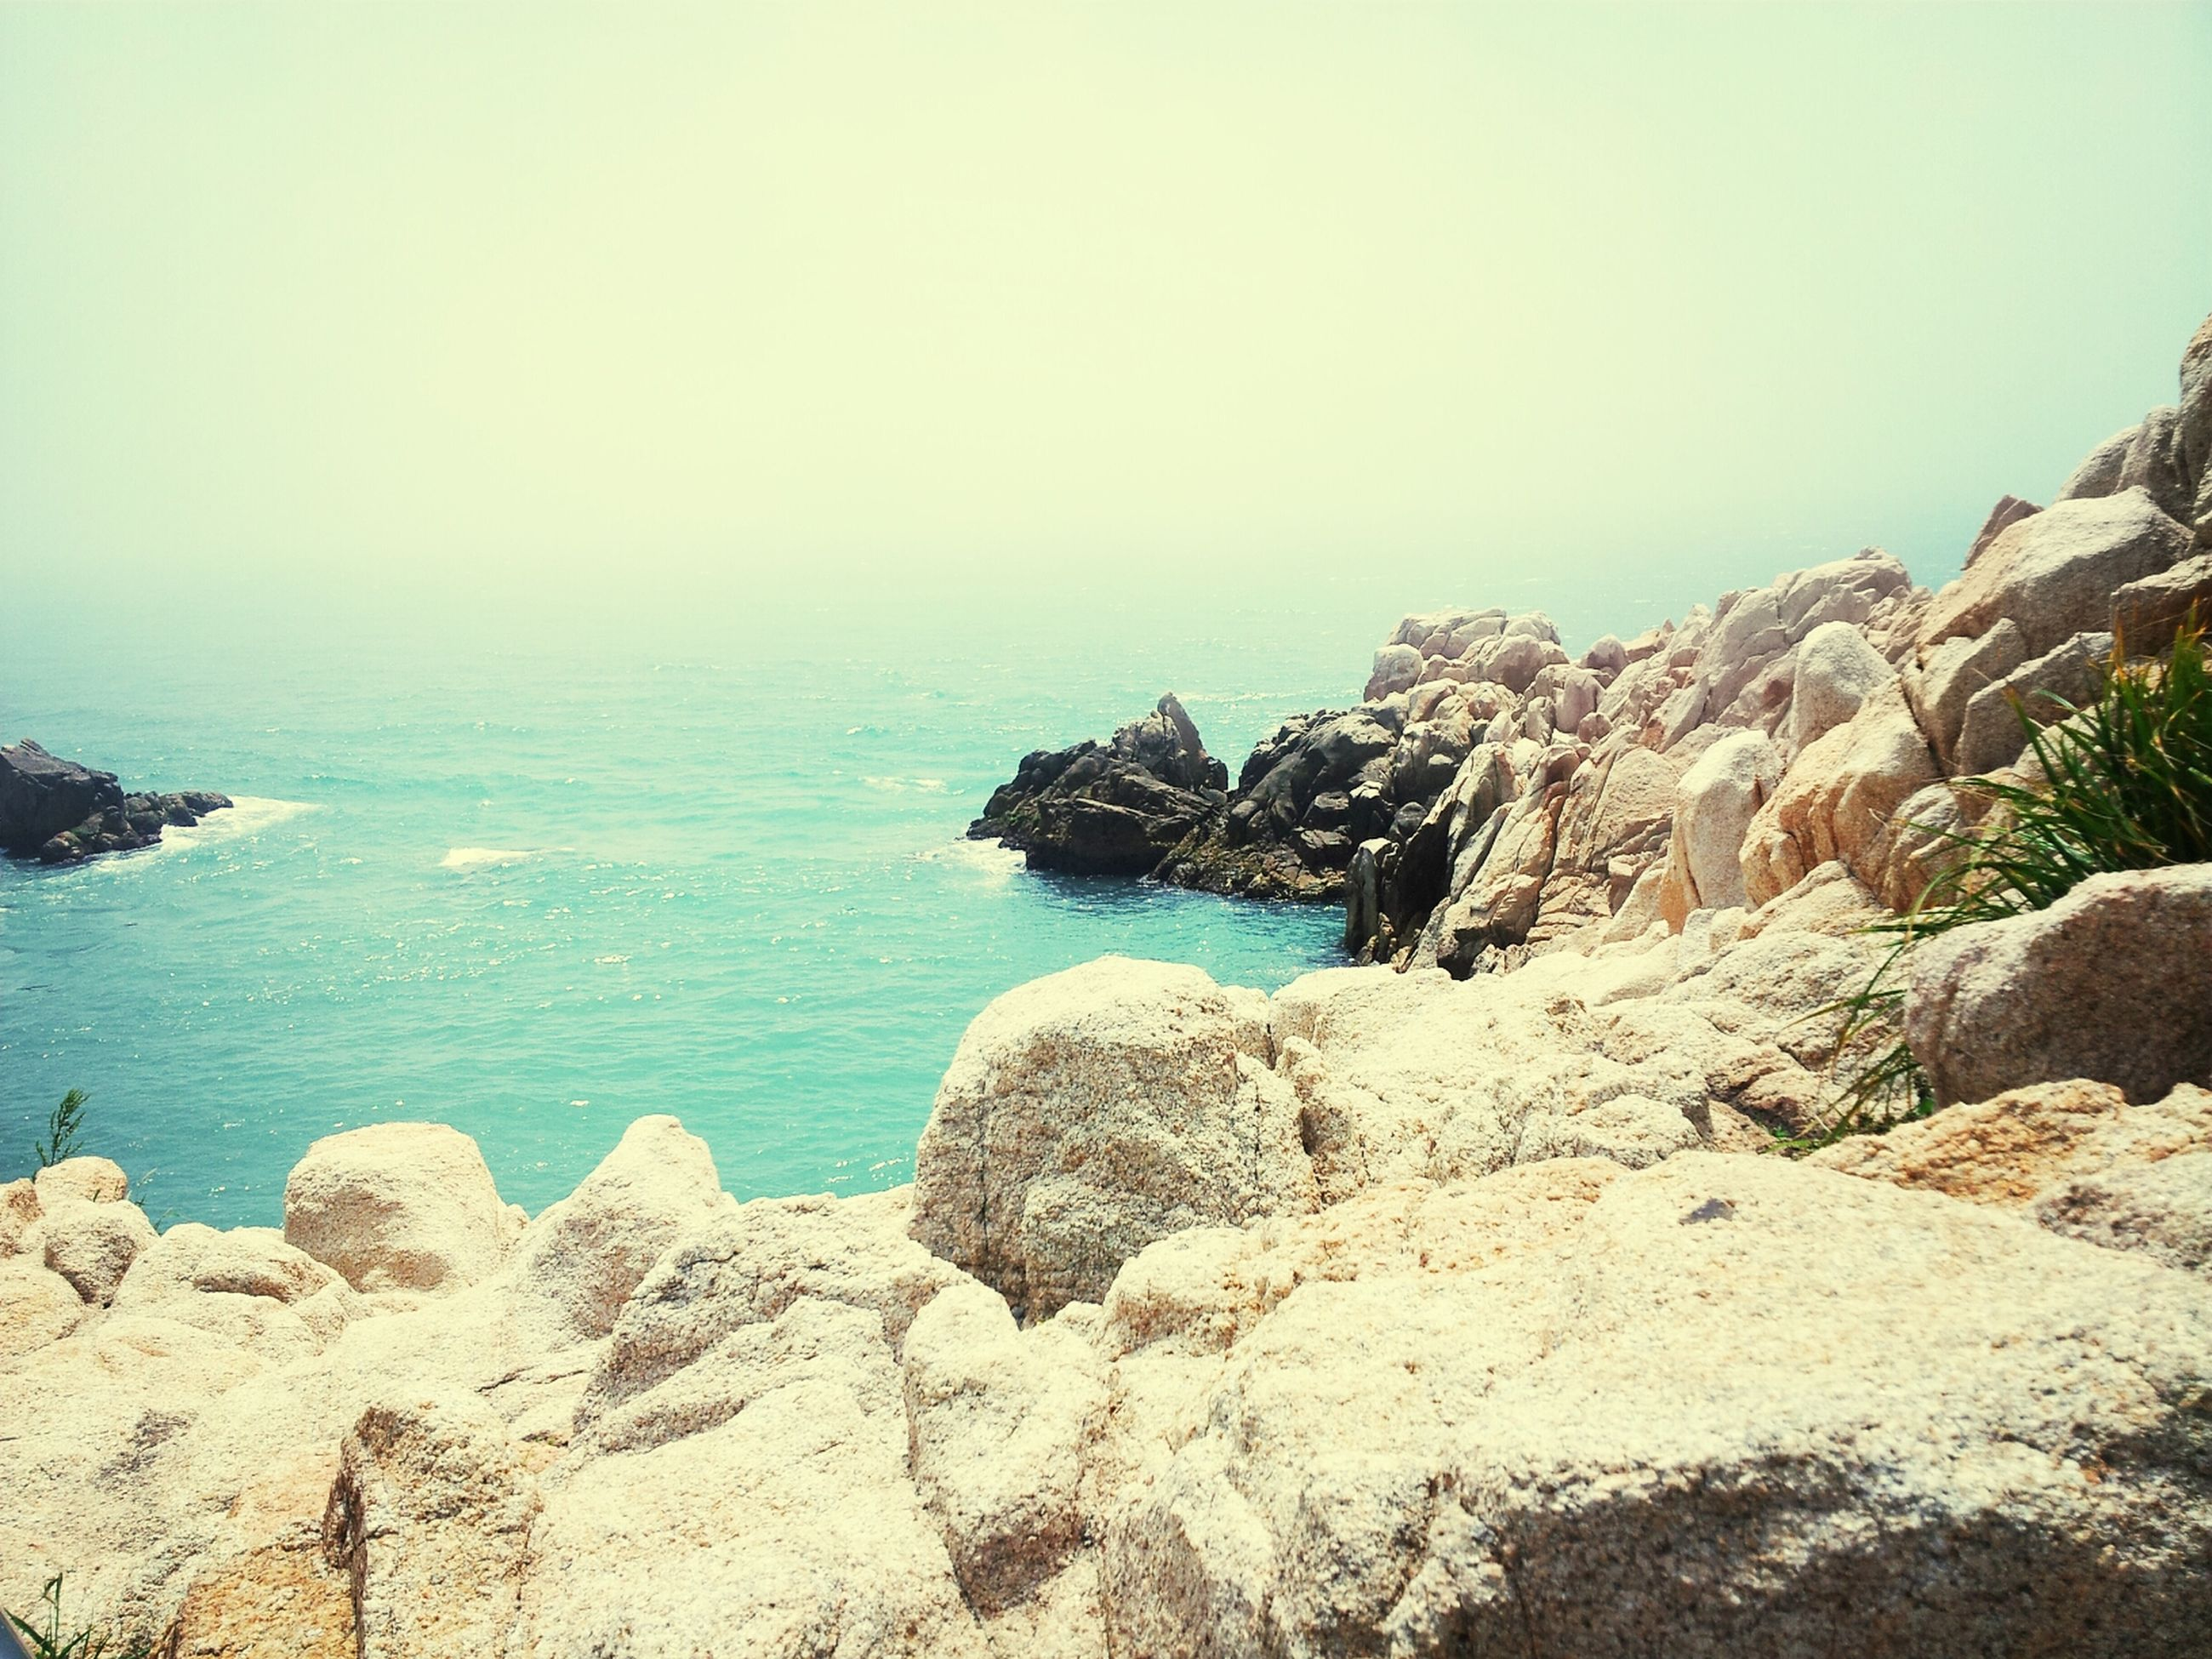 sea, scenics, tranquil scene, horizon over water, tranquility, water, rock formation, beauty in nature, rock - object, clear sky, nature, rock, cliff, idyllic, beach, copy space, blue, shore, coastline, sky